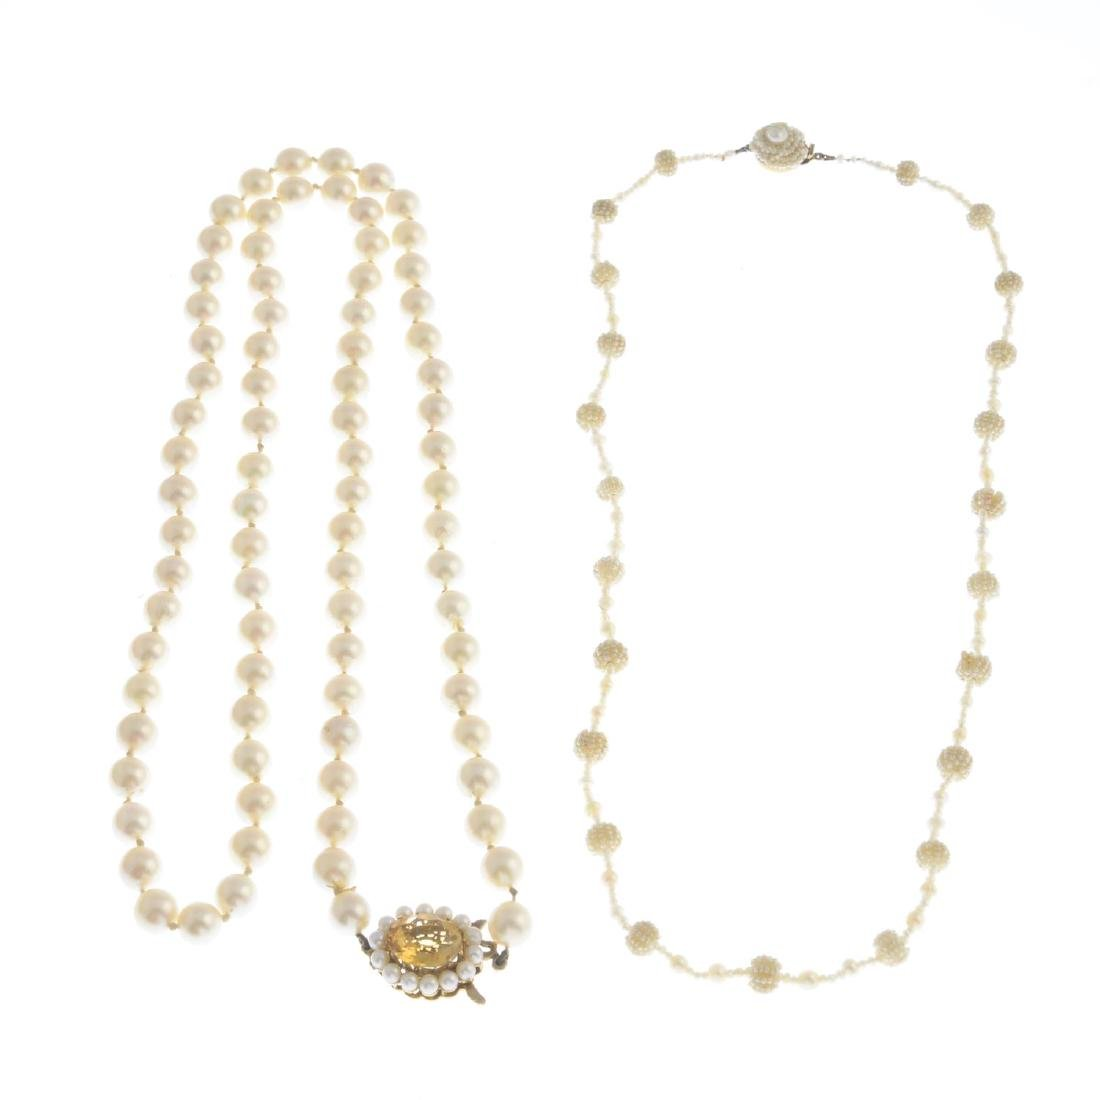 Two pearl necklaces. The first designed as a series of - 2